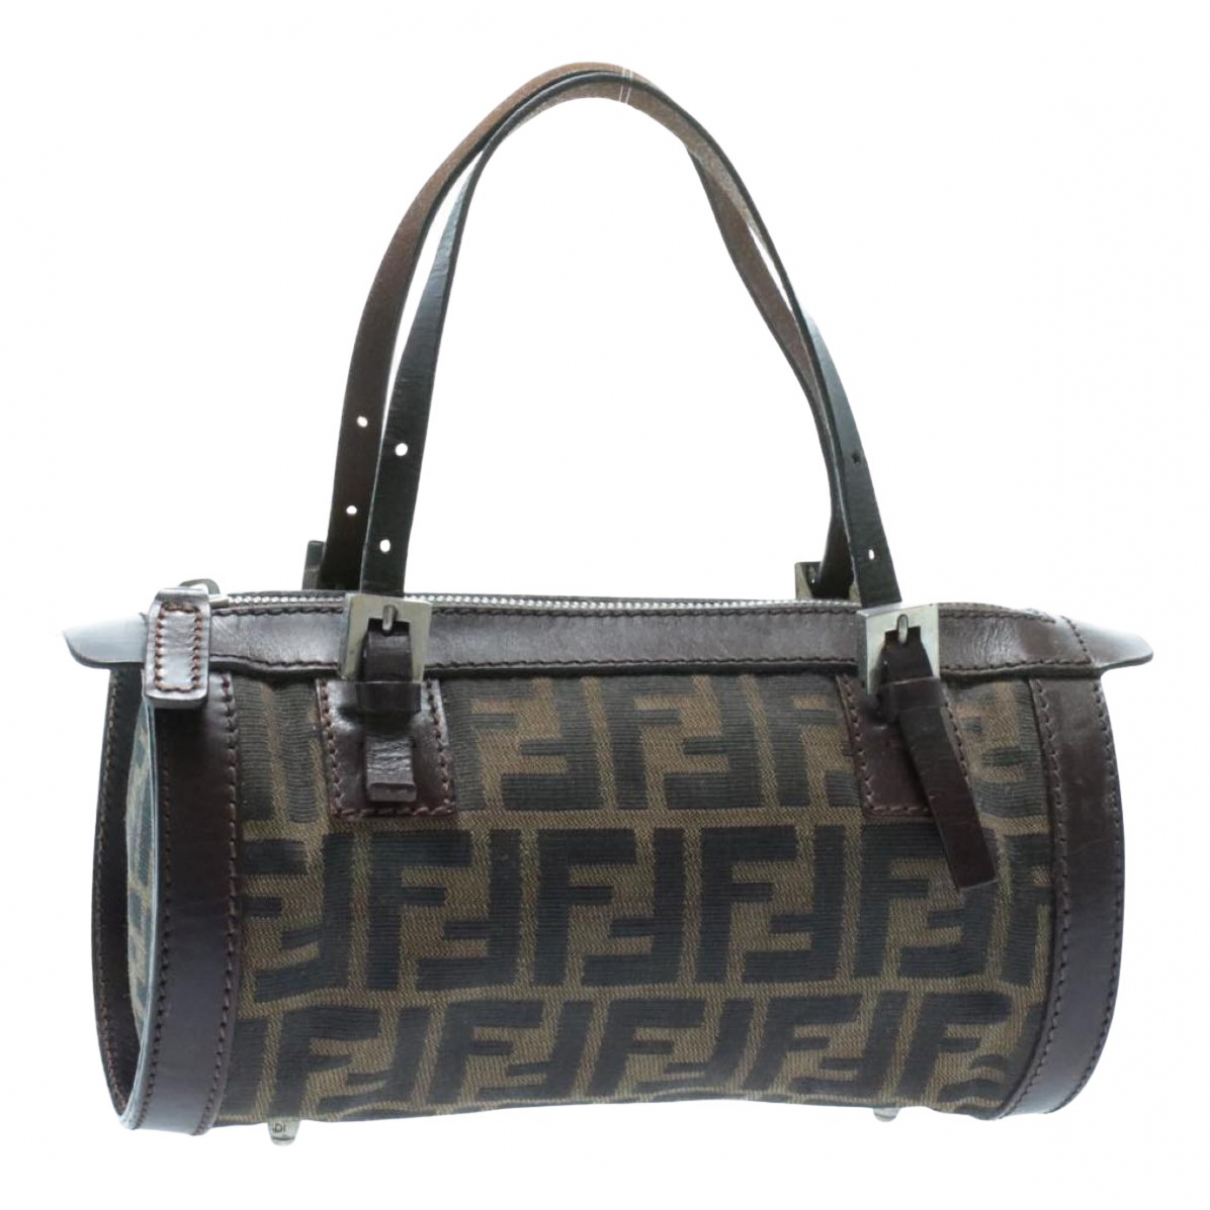 Fendi N Brown Cloth handbag for Women N